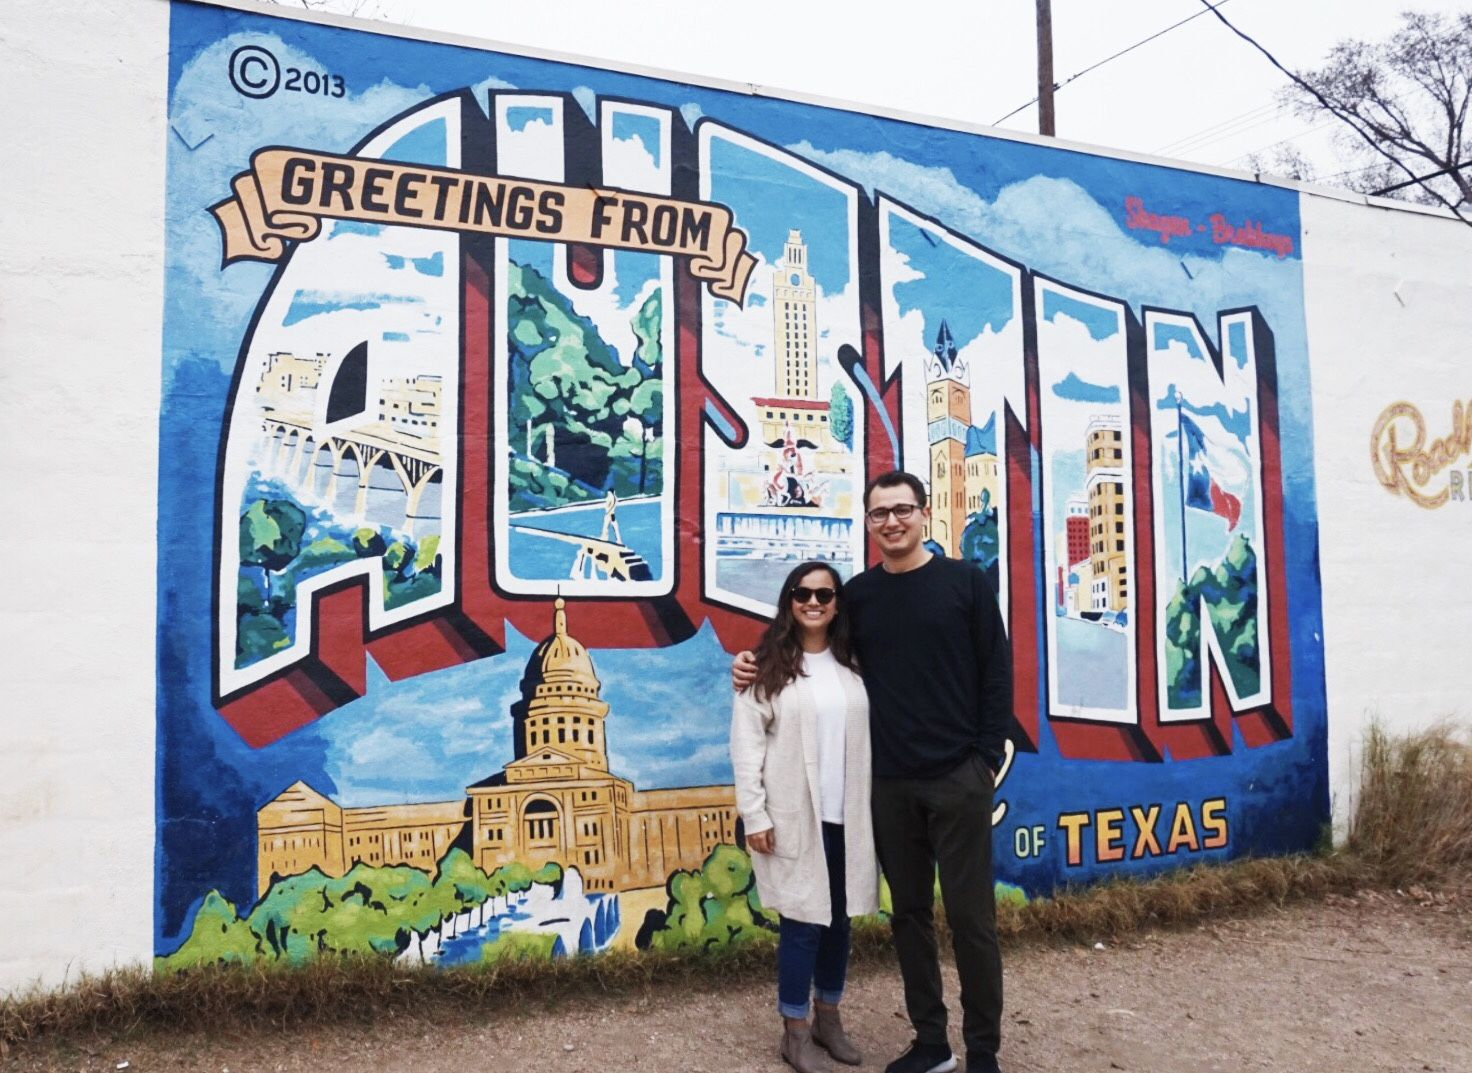 Greetings From Austin Wall Austin Texas Greetings Baseball Cards Cards